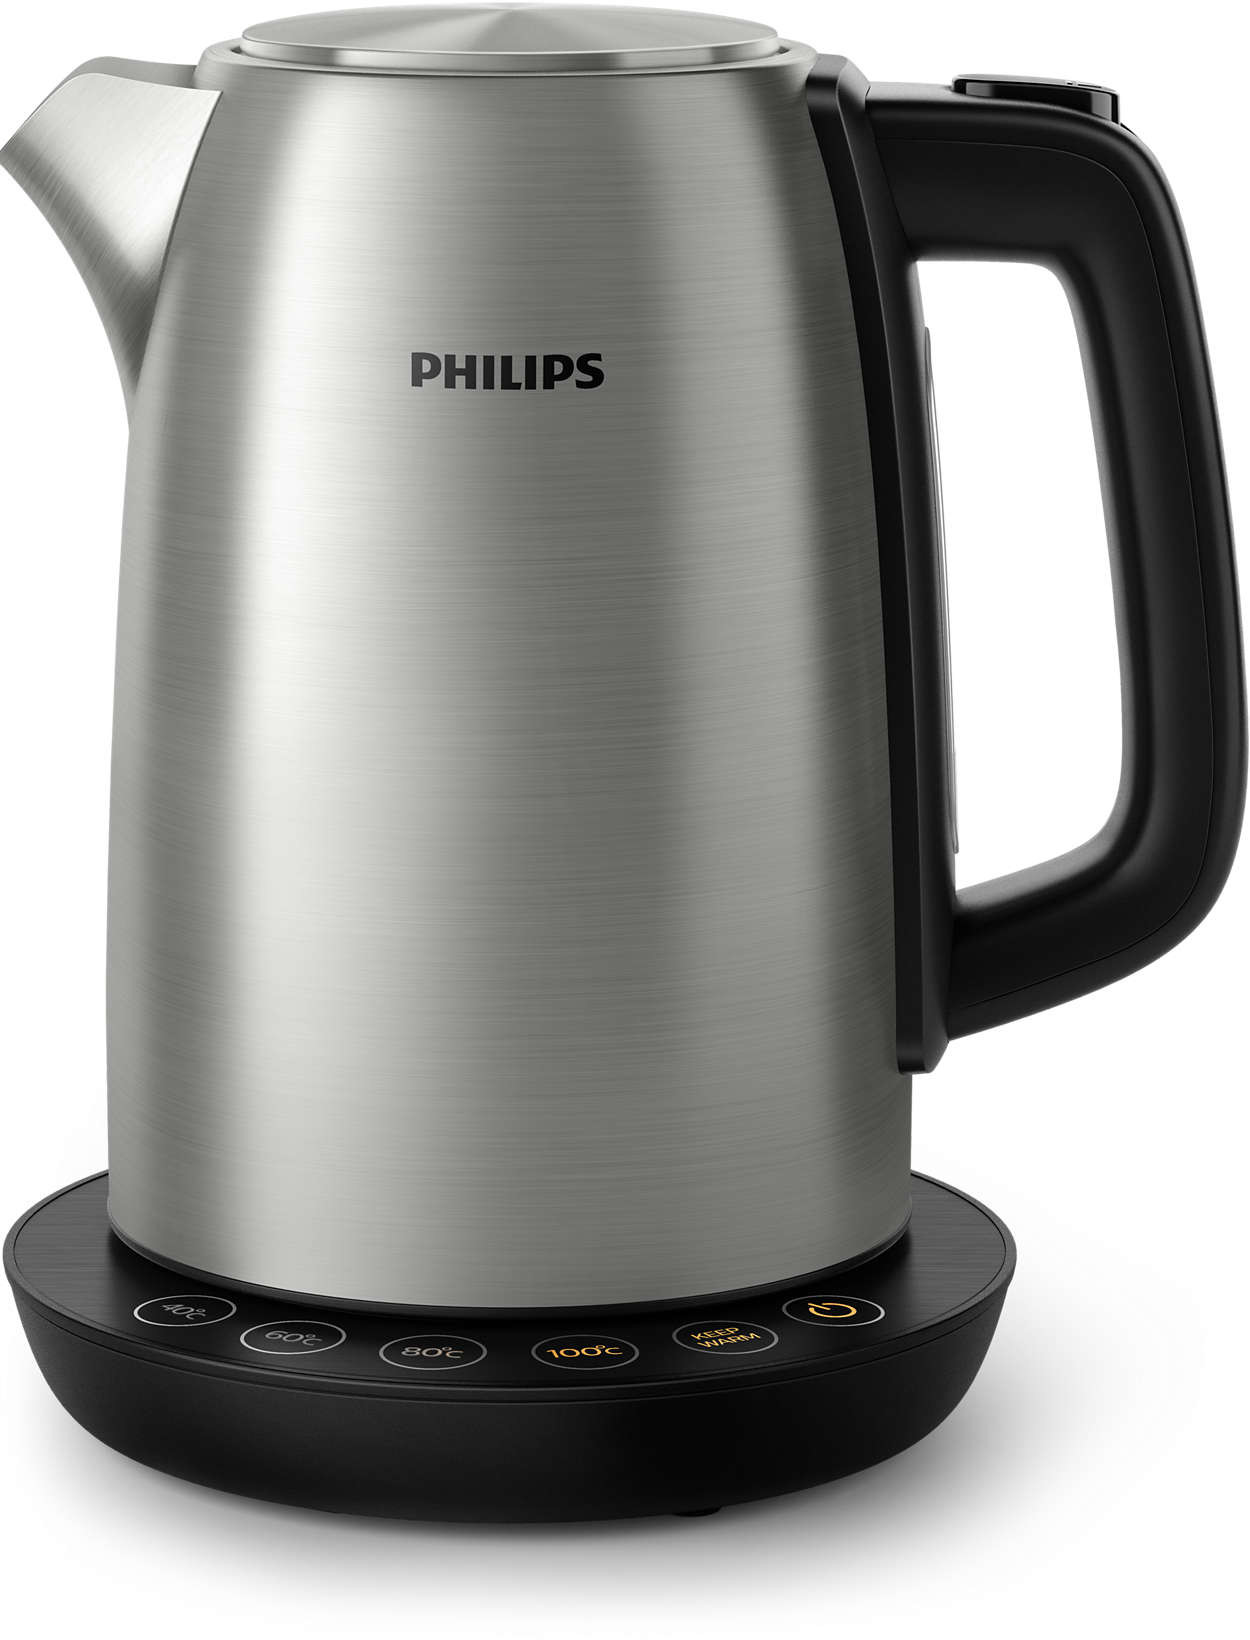 Philips Avance Collection HD9359/90